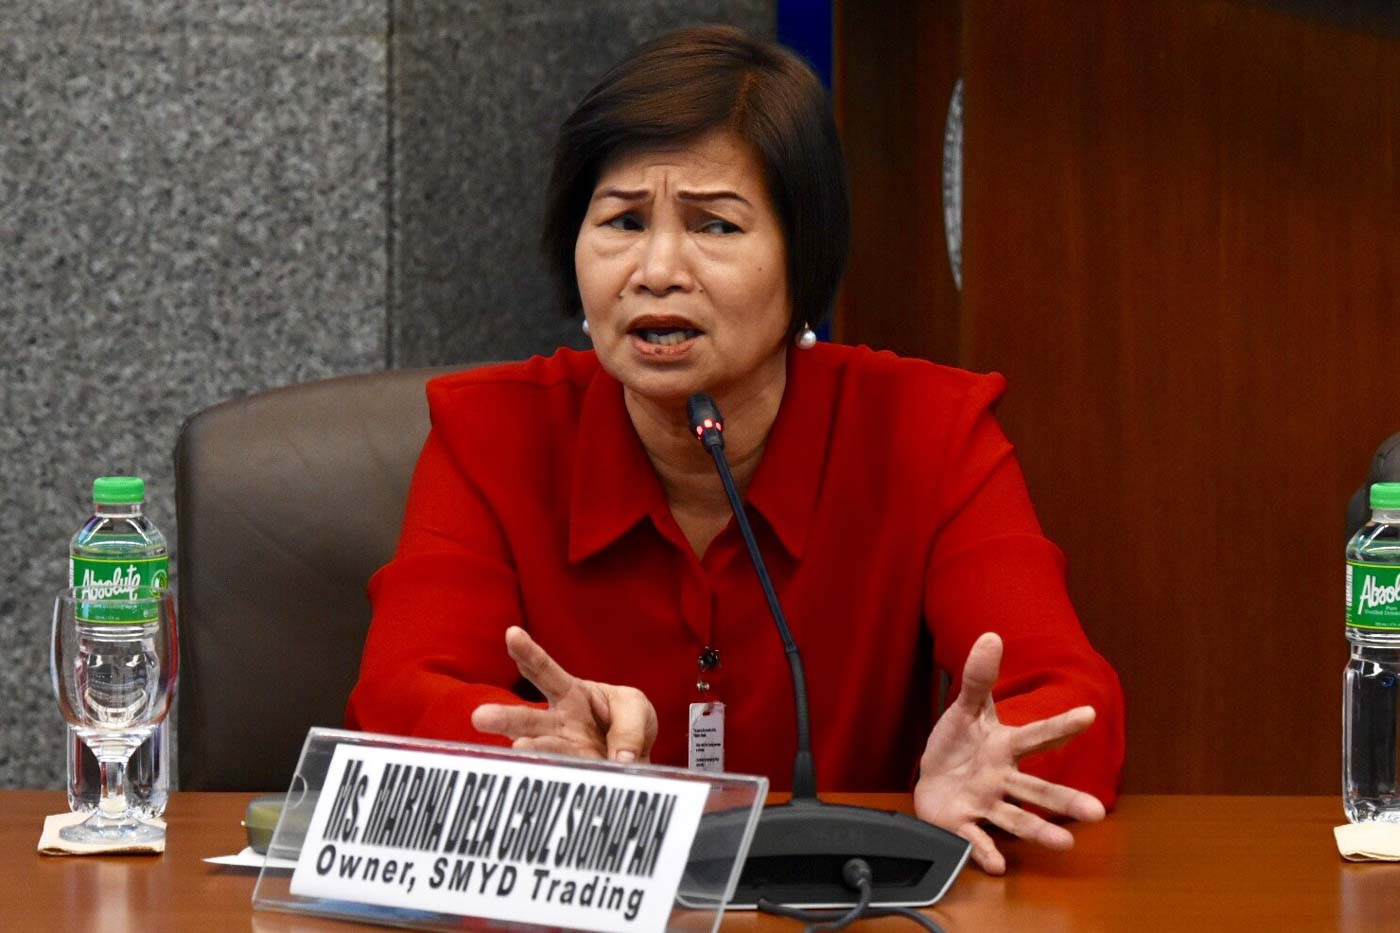 THREATS TO LIFE. Marina dela Cruz Signapan, owner of SMYD Trading, claims  threats to her life have made her feel ill, prompting her to skip a Senate hearing on shabu smuggling. File photo by Angie de Silva/Rappler